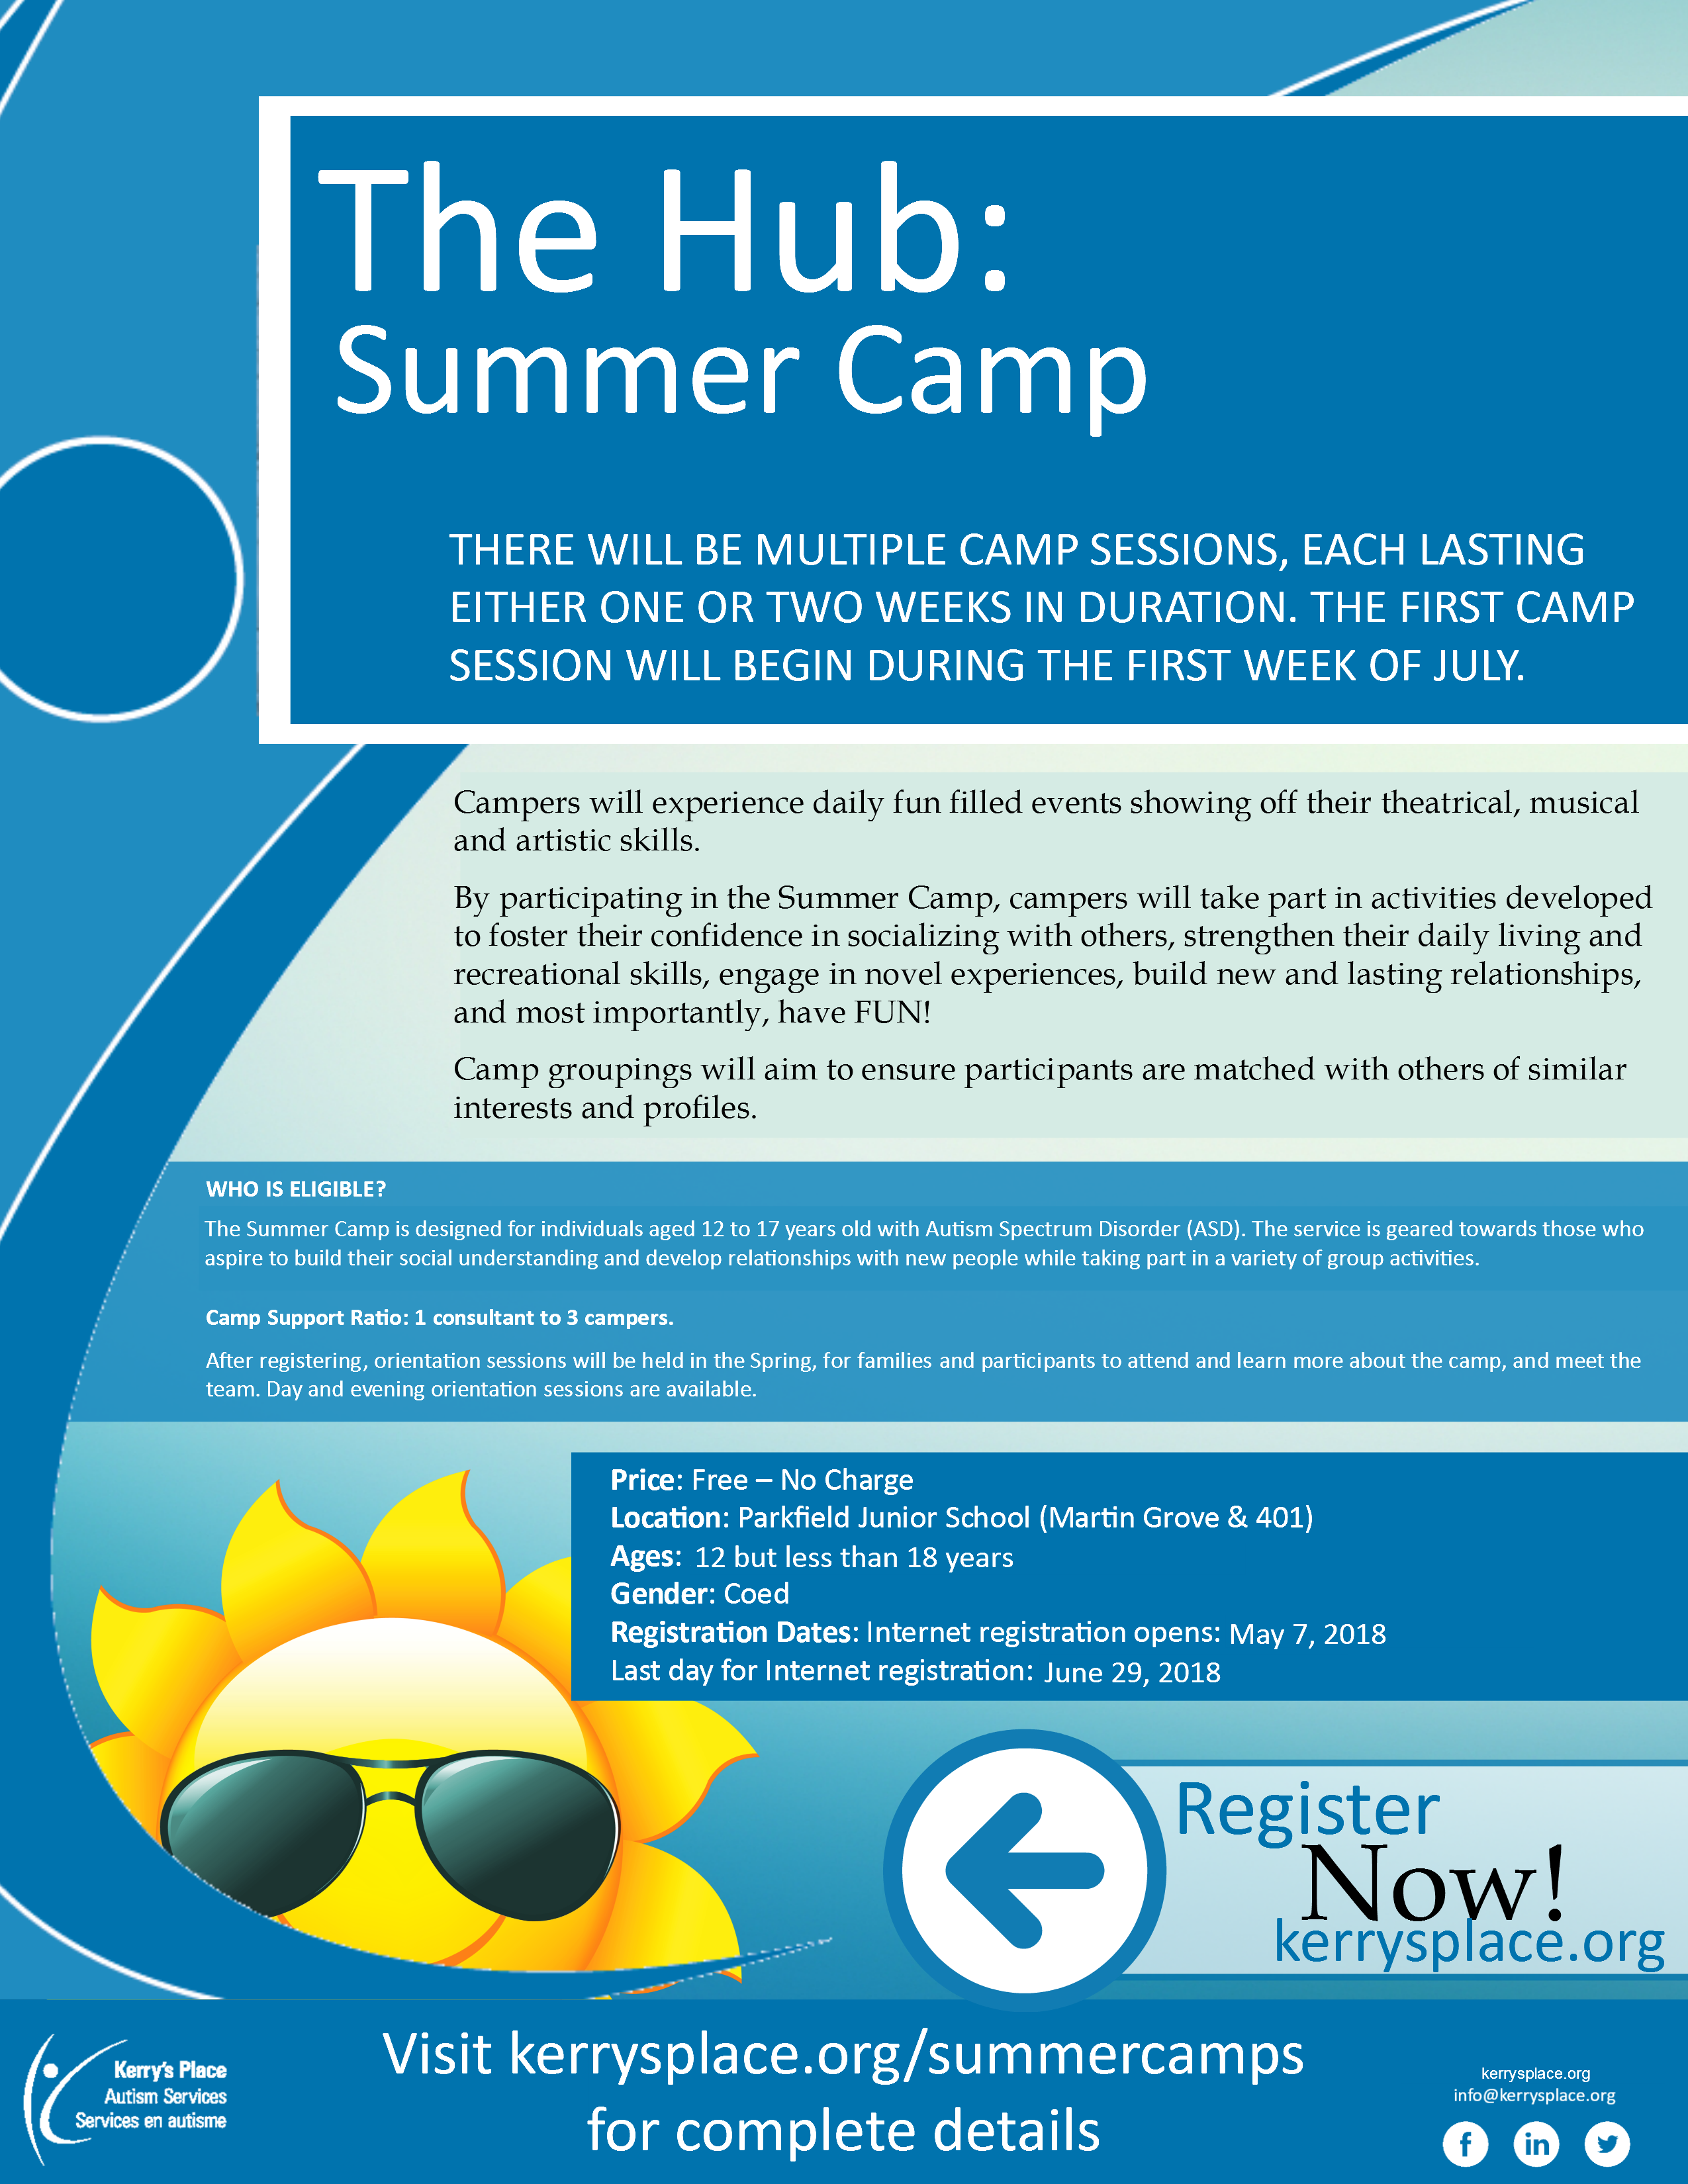 The Hub: Summer Camp – Kerry's Place